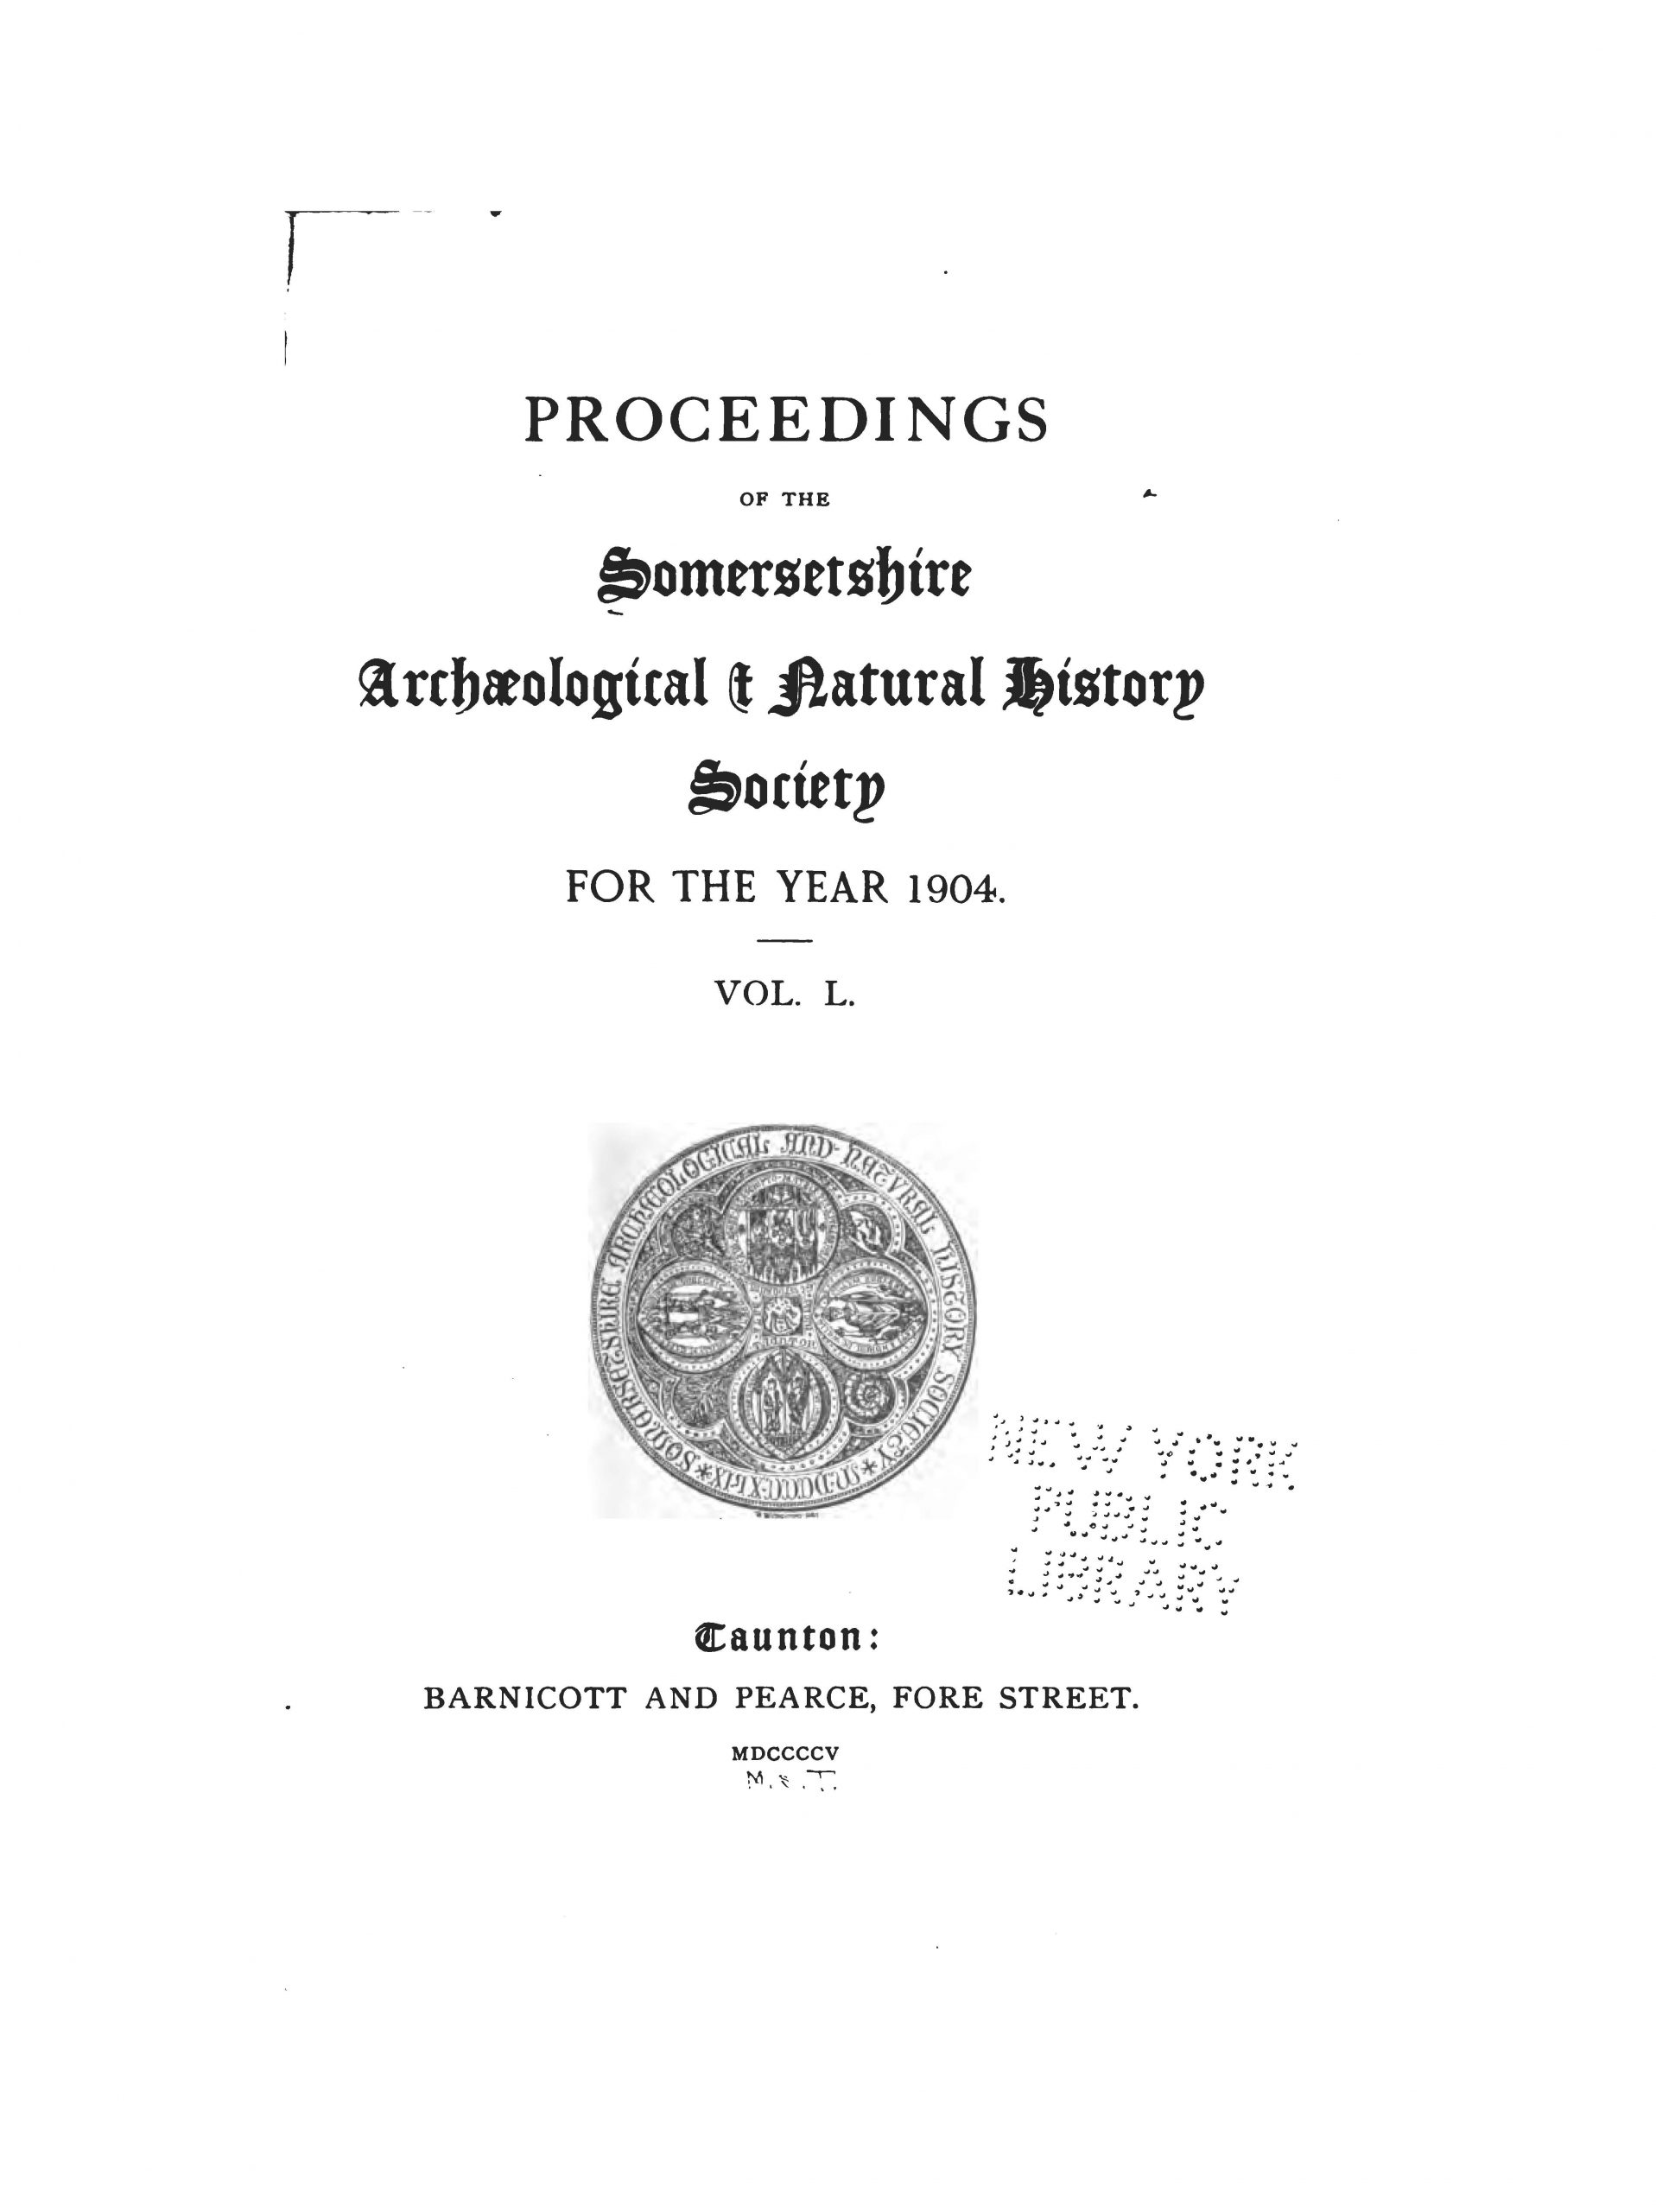 SANHS Proceedings Volume 50 cover